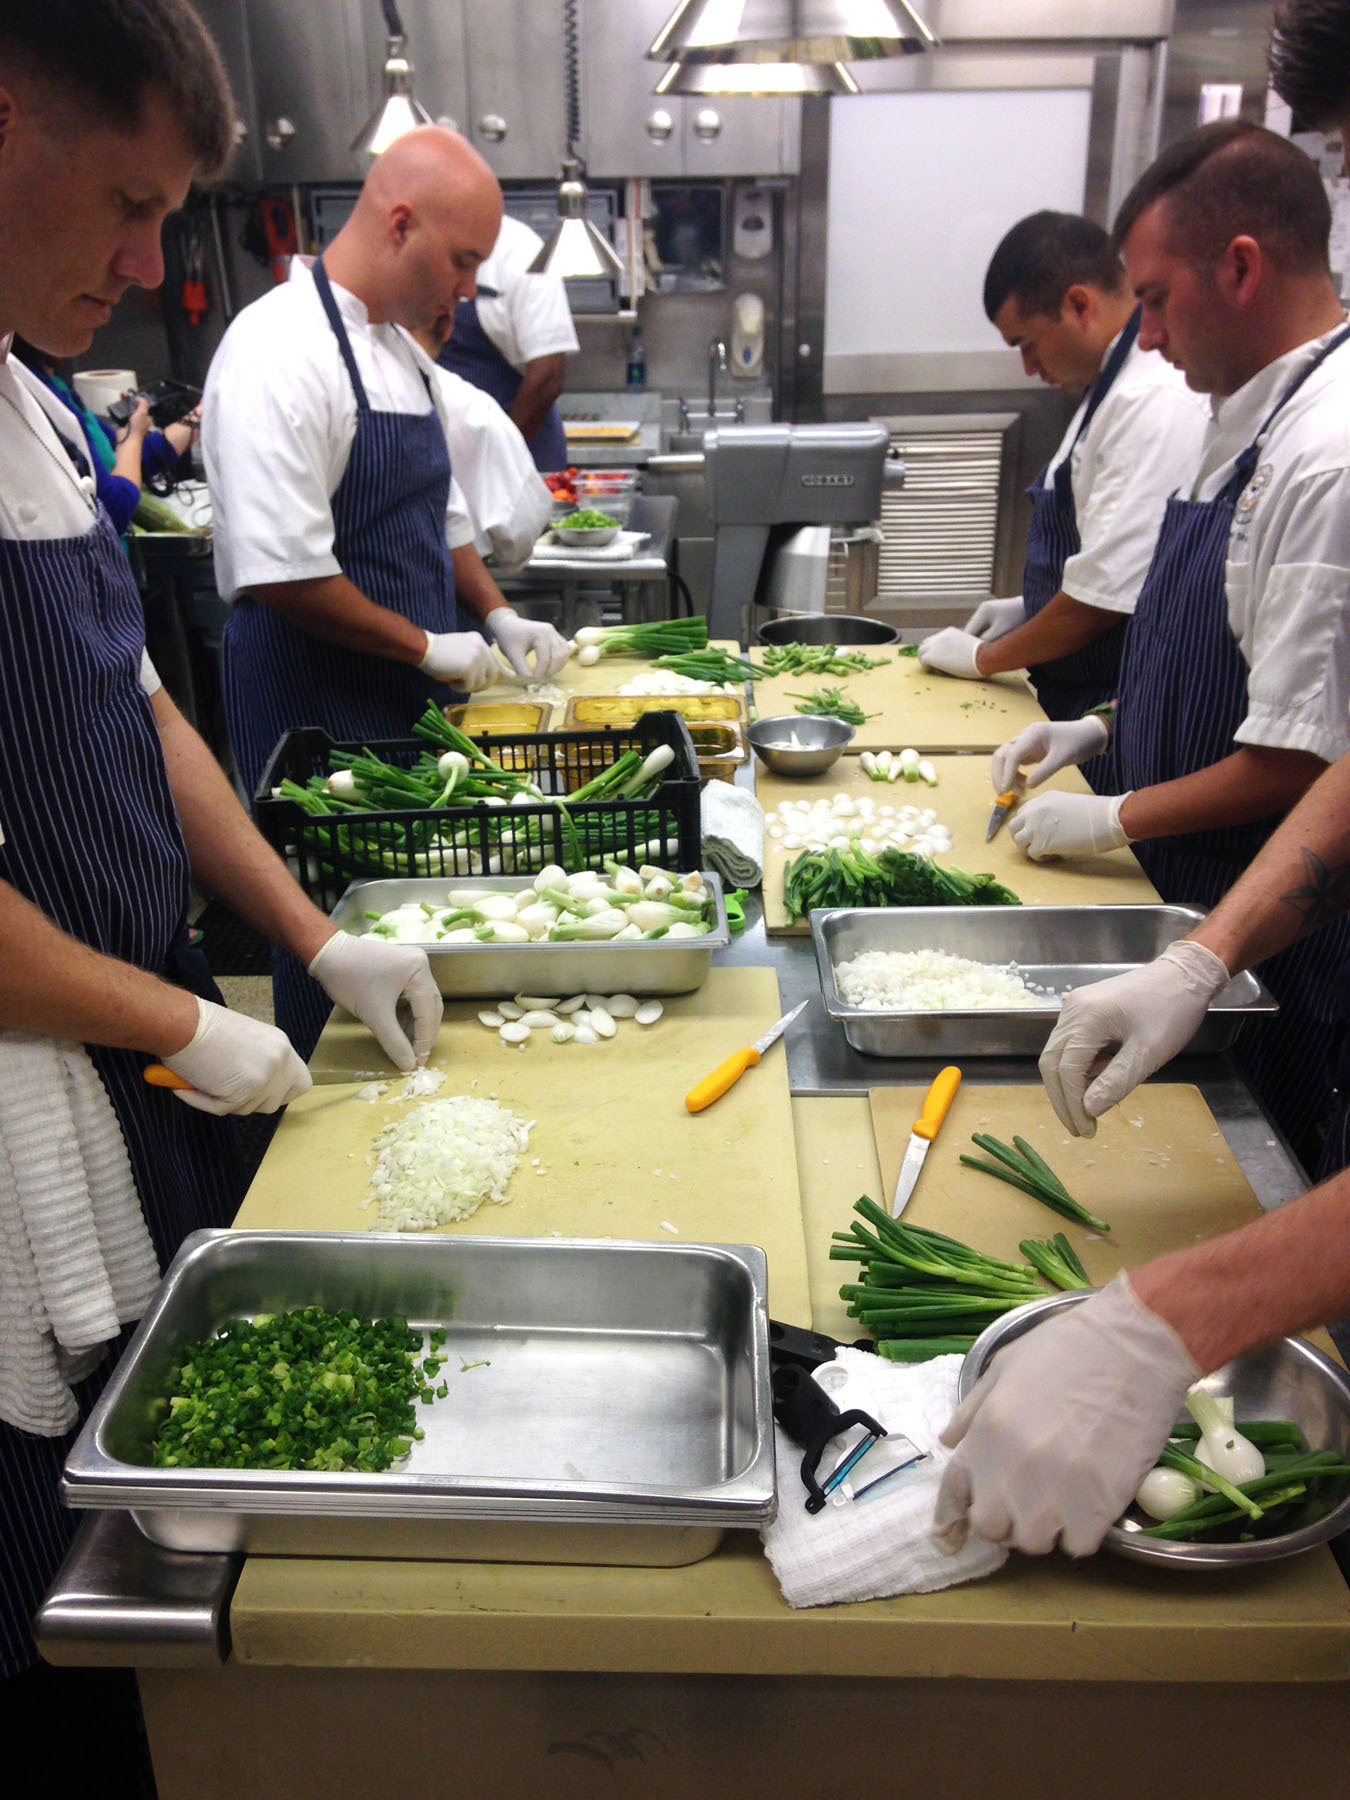 White House chefs chop a lot of vegetables to prepare for a dinner of 400 Tuesday night. Photo: Gregory Barber/NPR